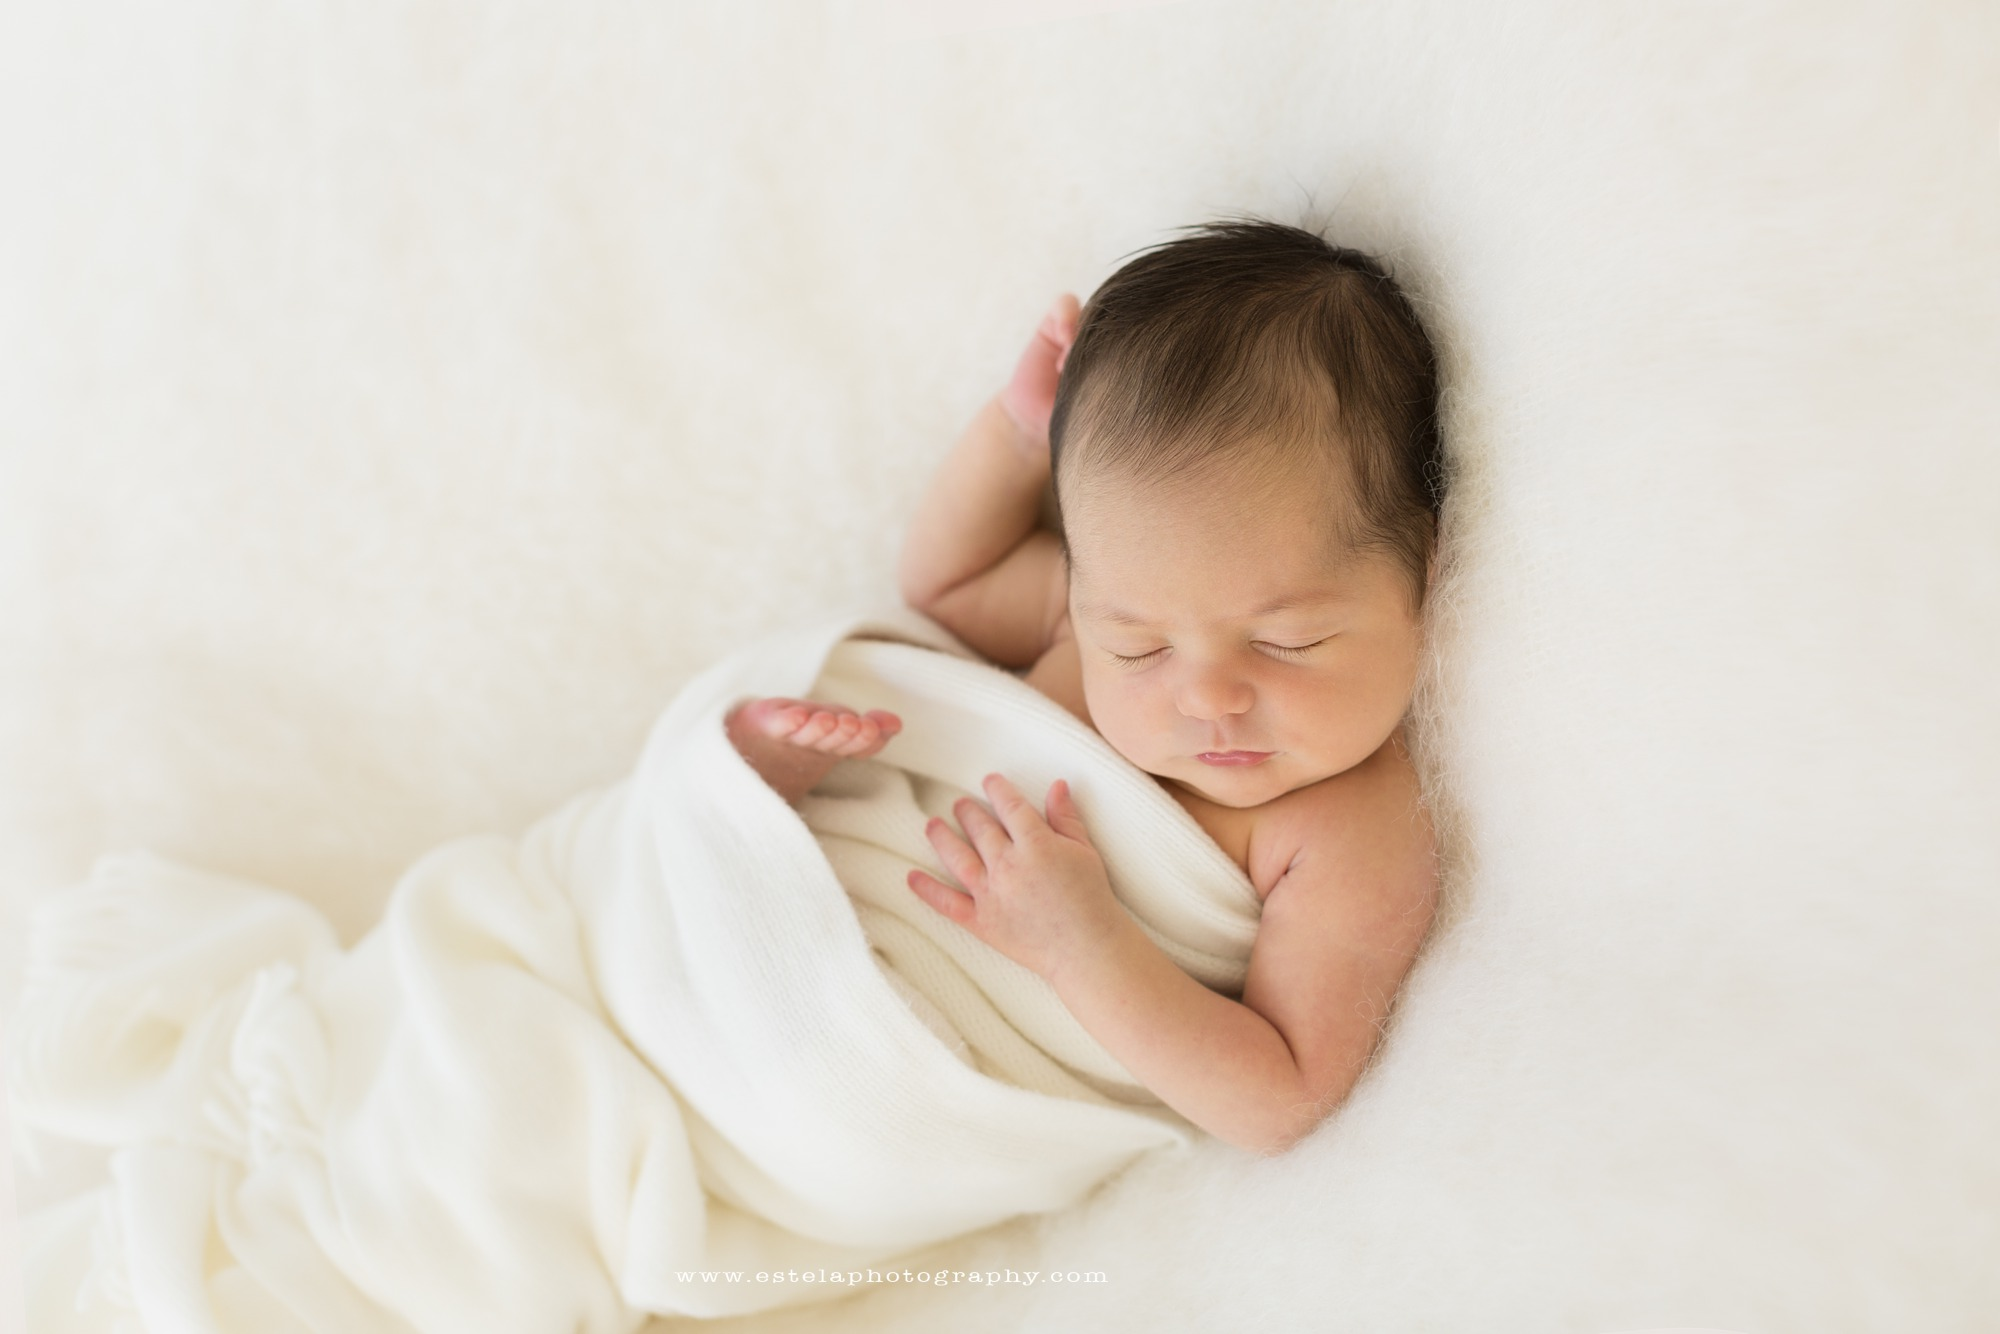 A baby sleeps captured by estela giargei photography a houston baby photographer